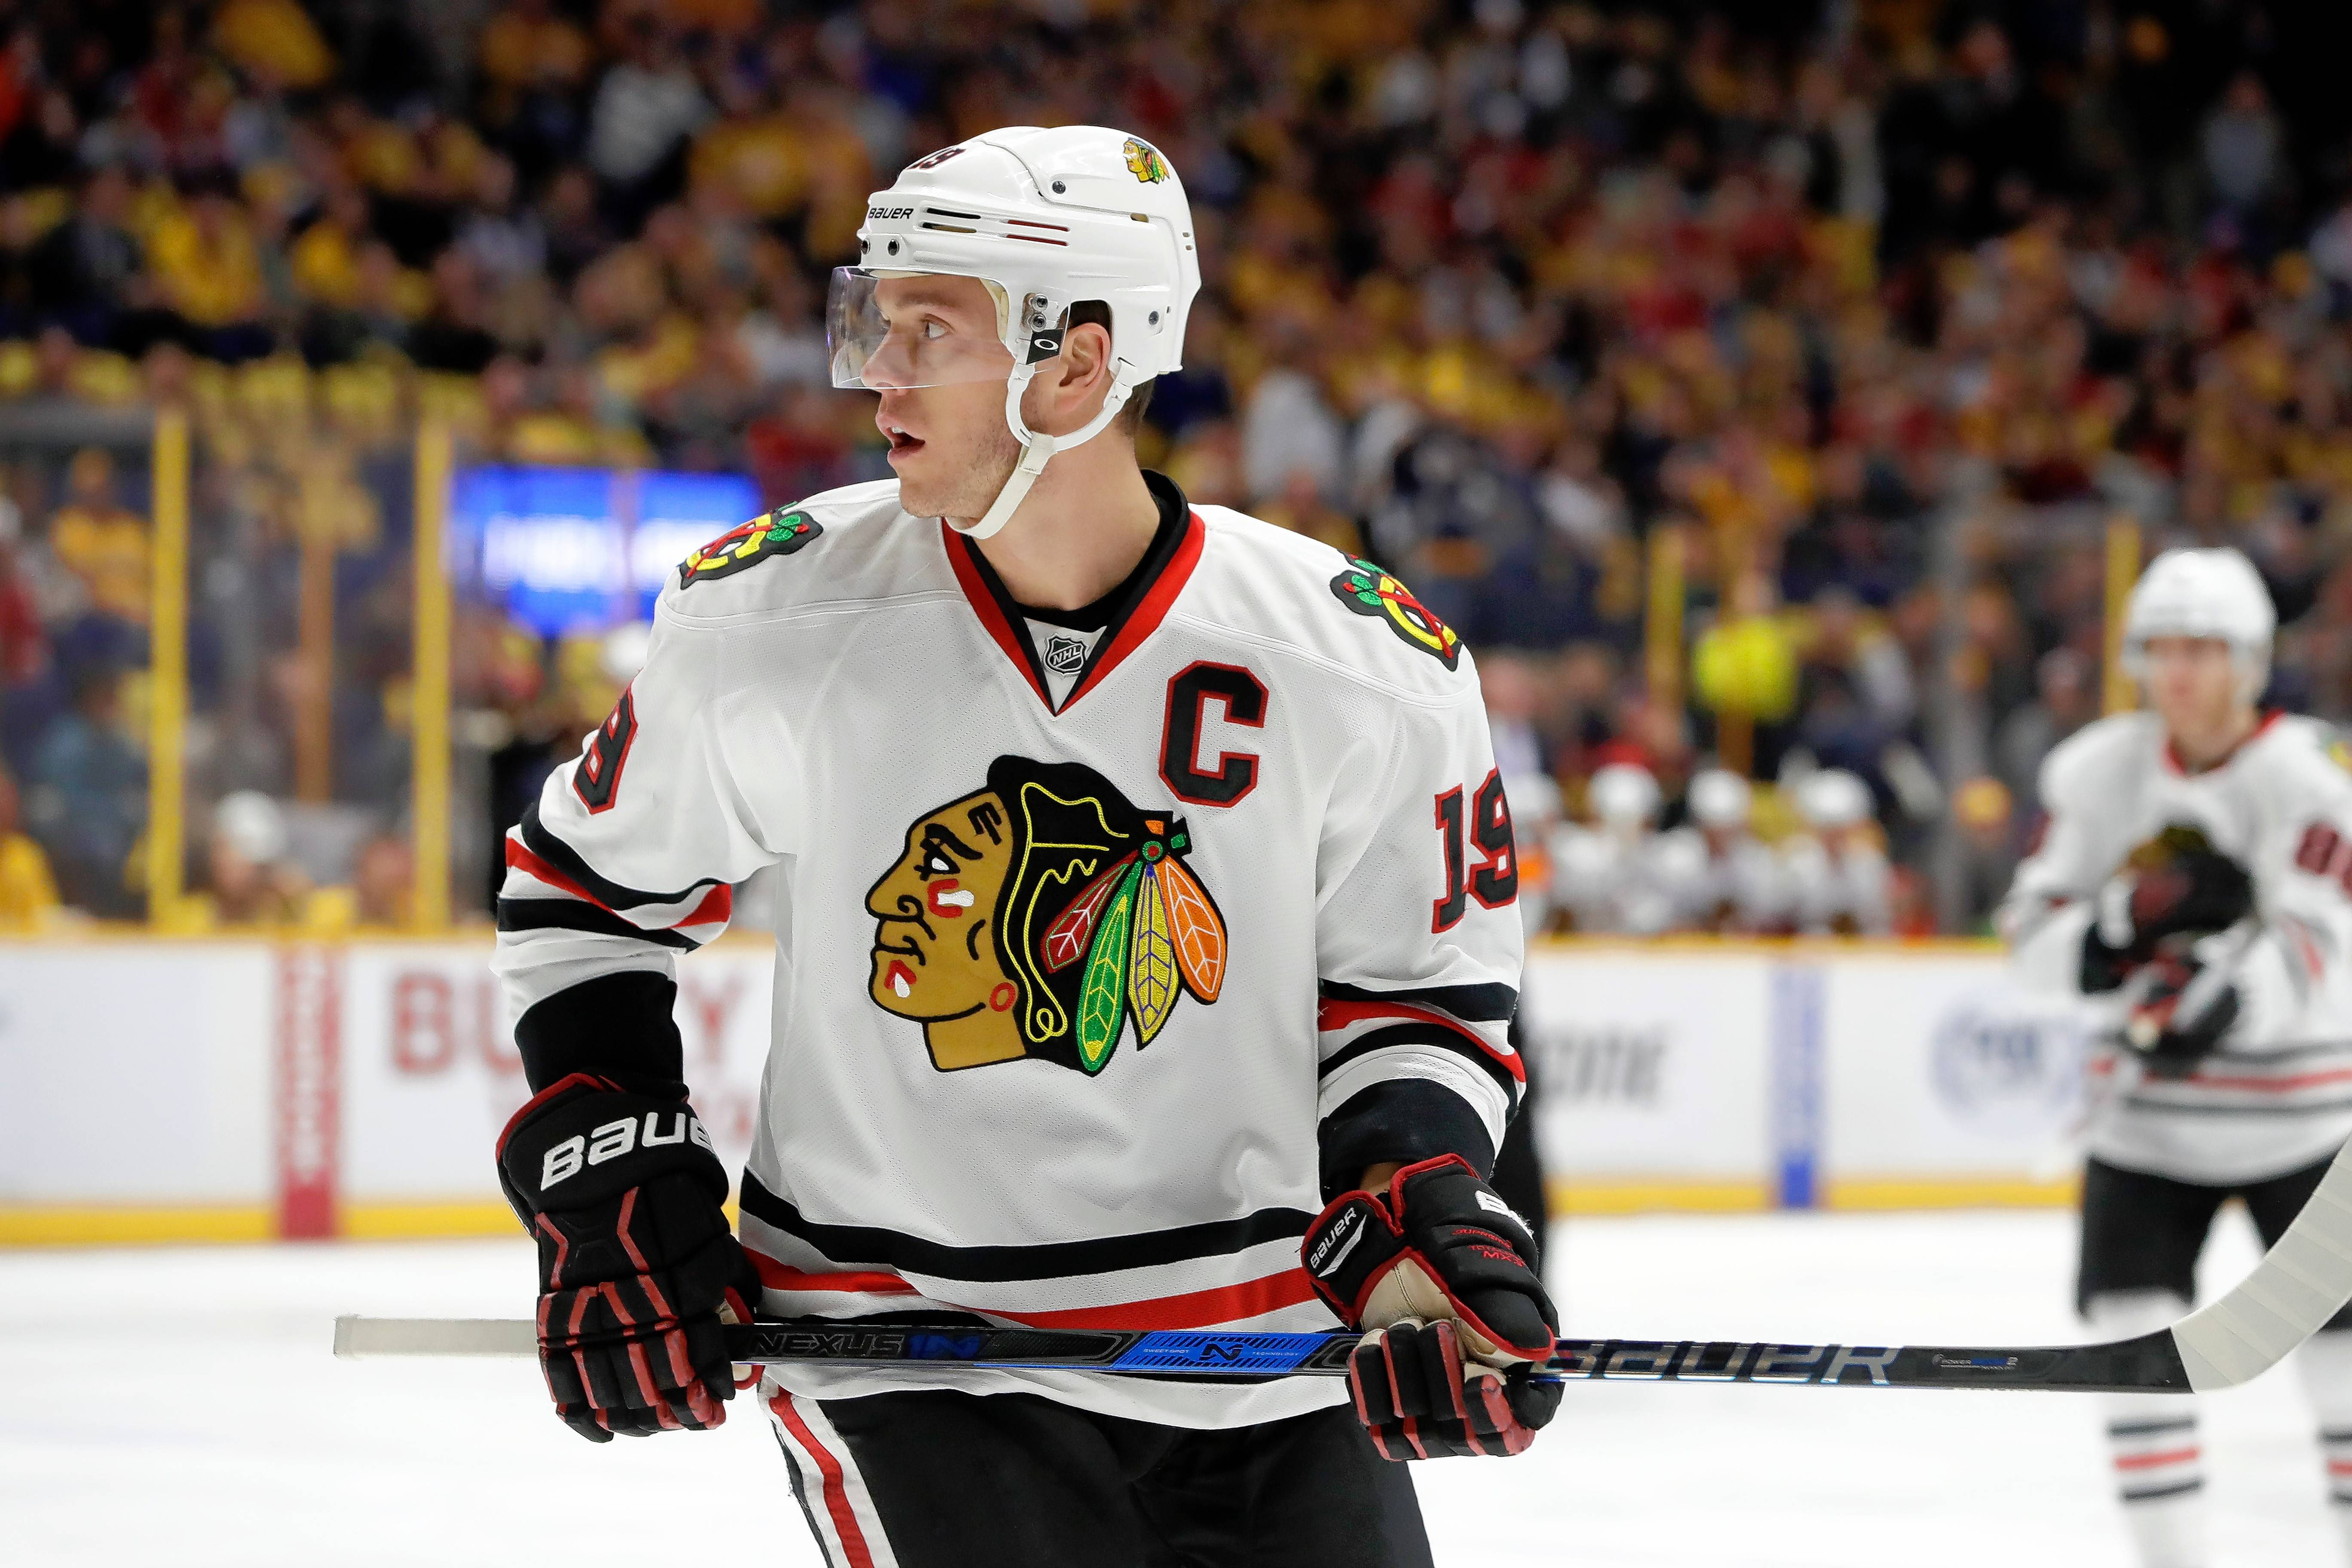 Although his scoring is down this season, Chicago Blackhawks center Jonathan Toews has been selected for his sixth NHL All-Star Game, which will be played Jan. 29 in Los Angeles.